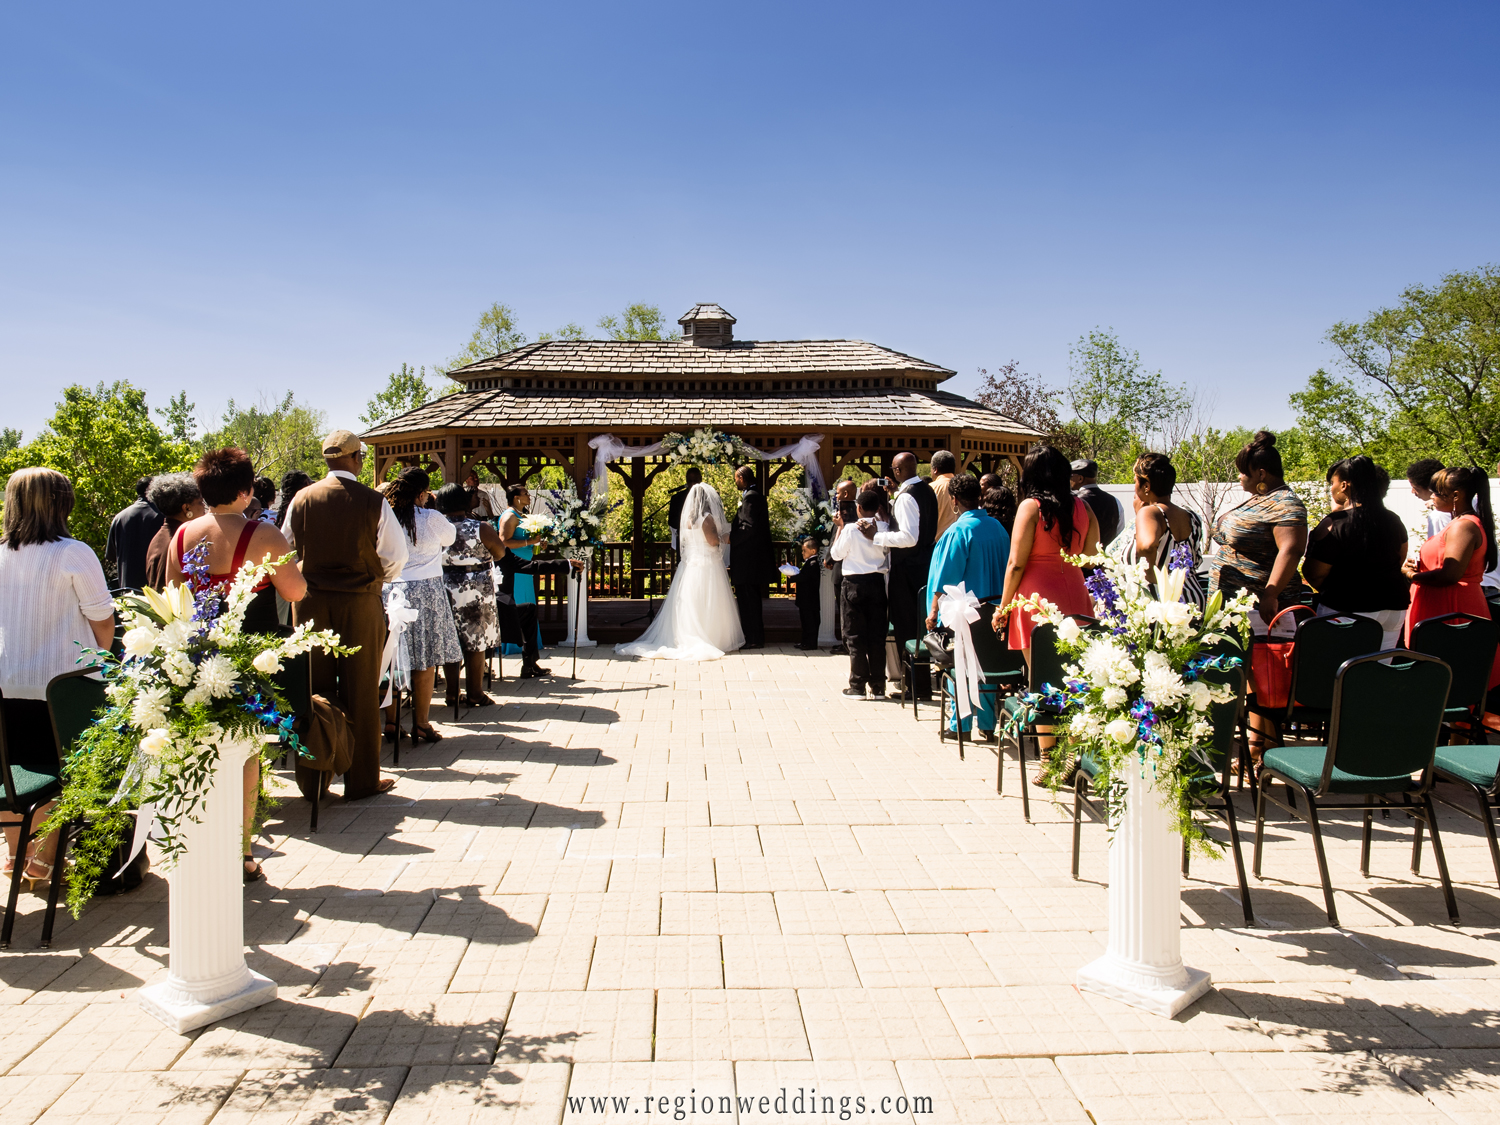 Outdoor wedding ceremony at the gazebo at The Patrician in Schererville, Indiana.